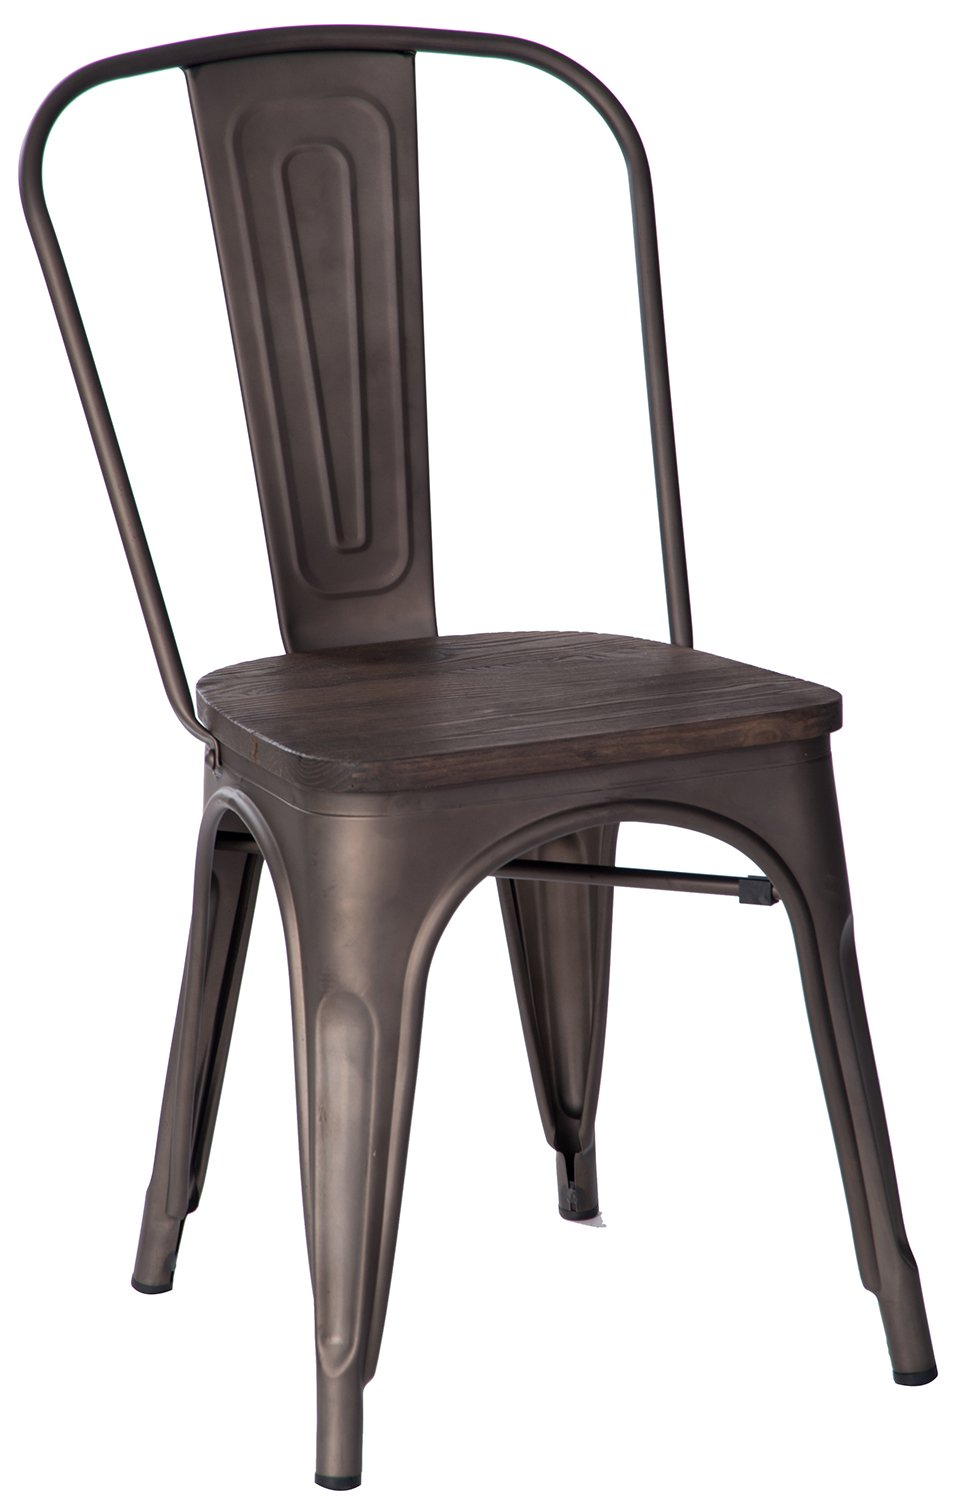 Merveilleux Amazon.com   Merax High Back Metal Dining Chair With Wood Seat Stackable  Vintage Dining Bistro Cafe Side Chairs, Copper   Chairs